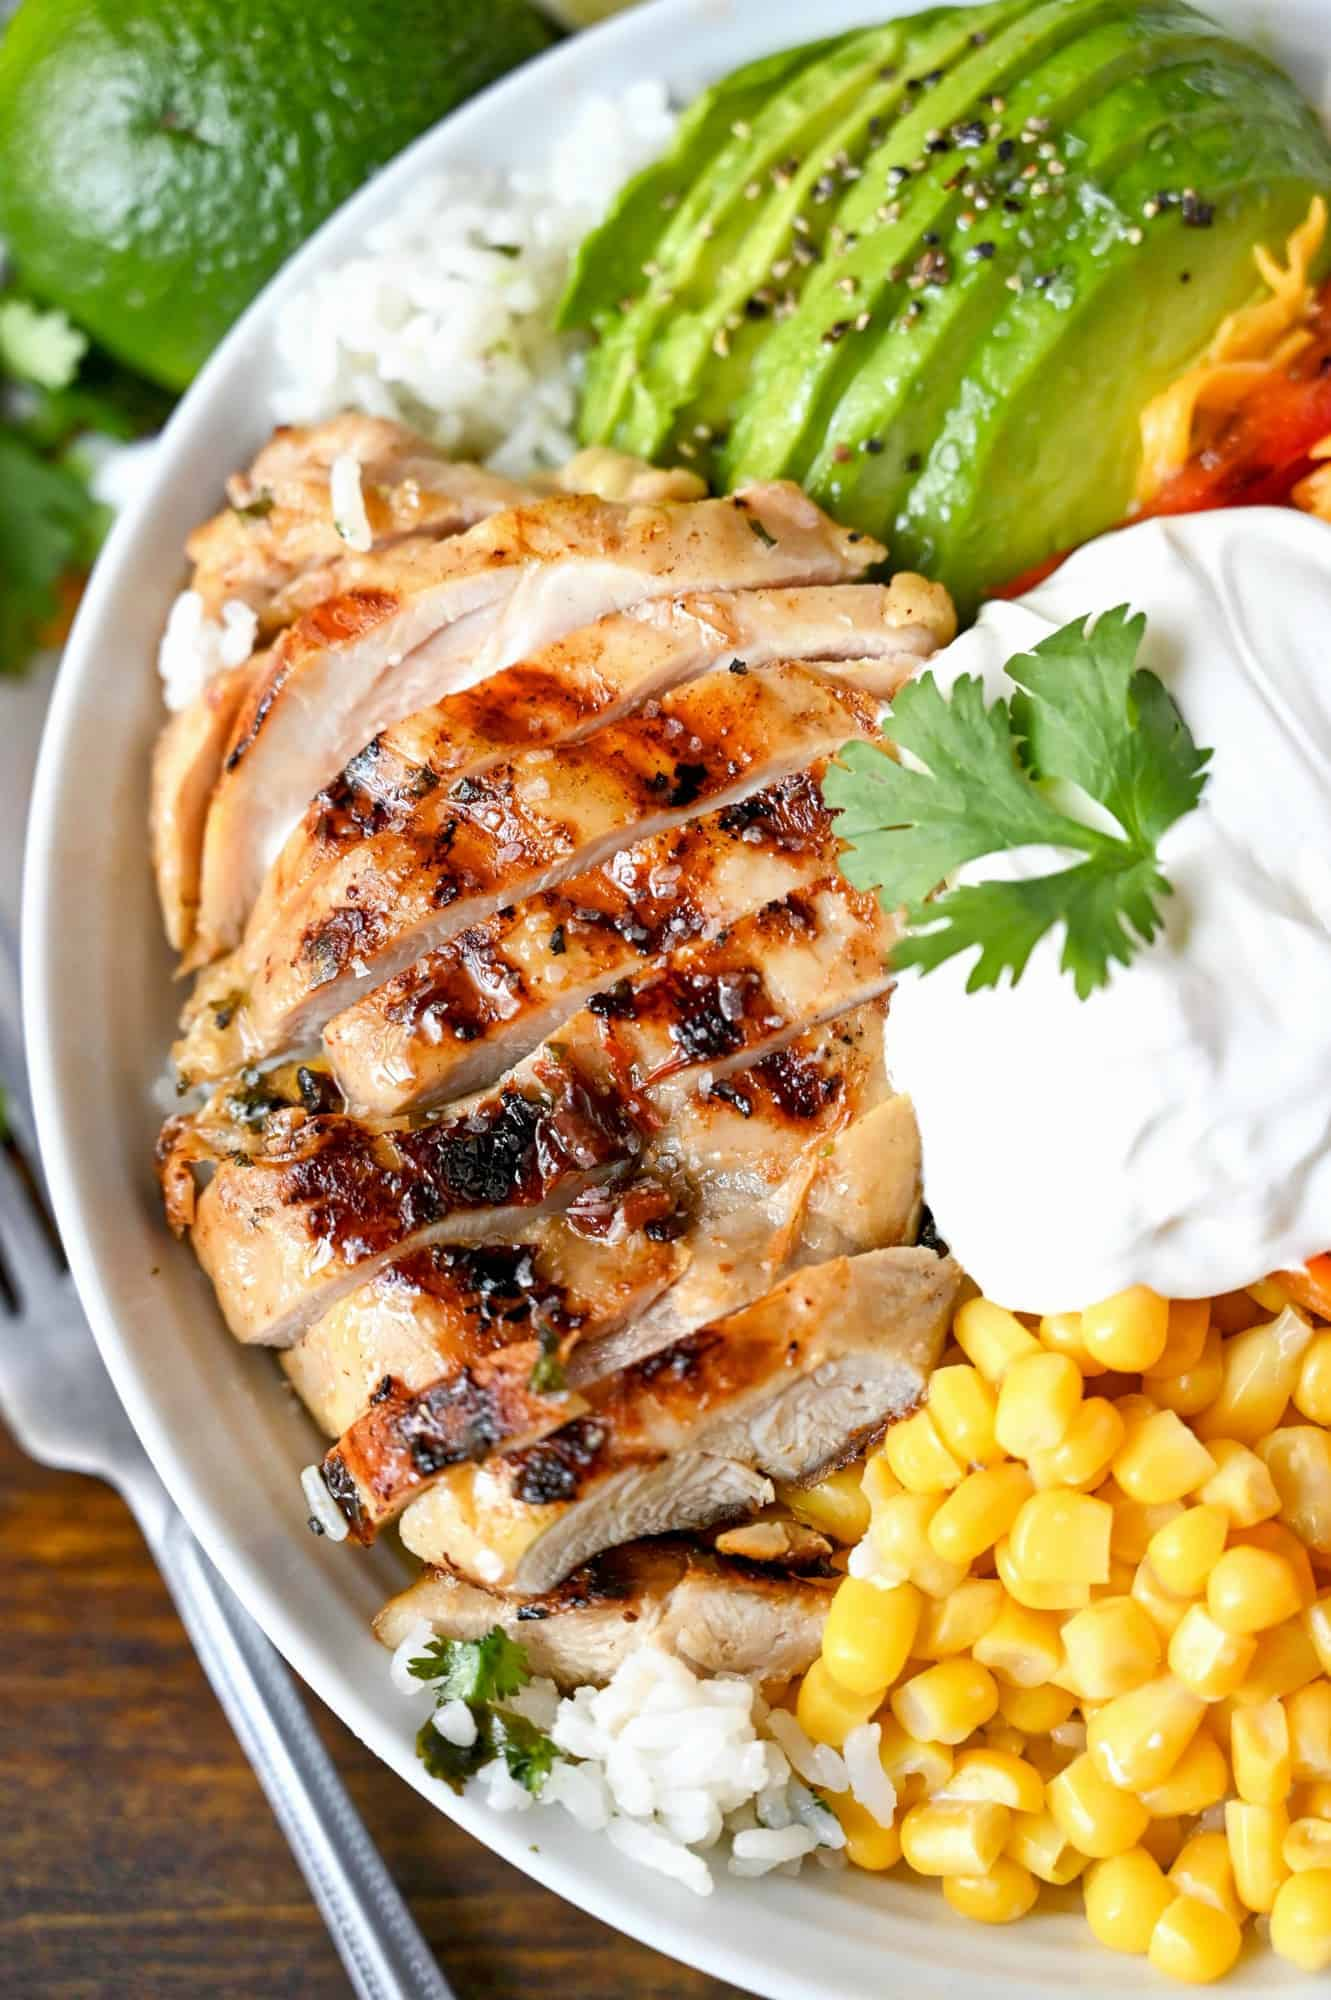 Tequila lime chicken, avacodo, cut into slices. Plus a scoop of corn and a some sour cream placed in a white bowl on top of cilantro rice.